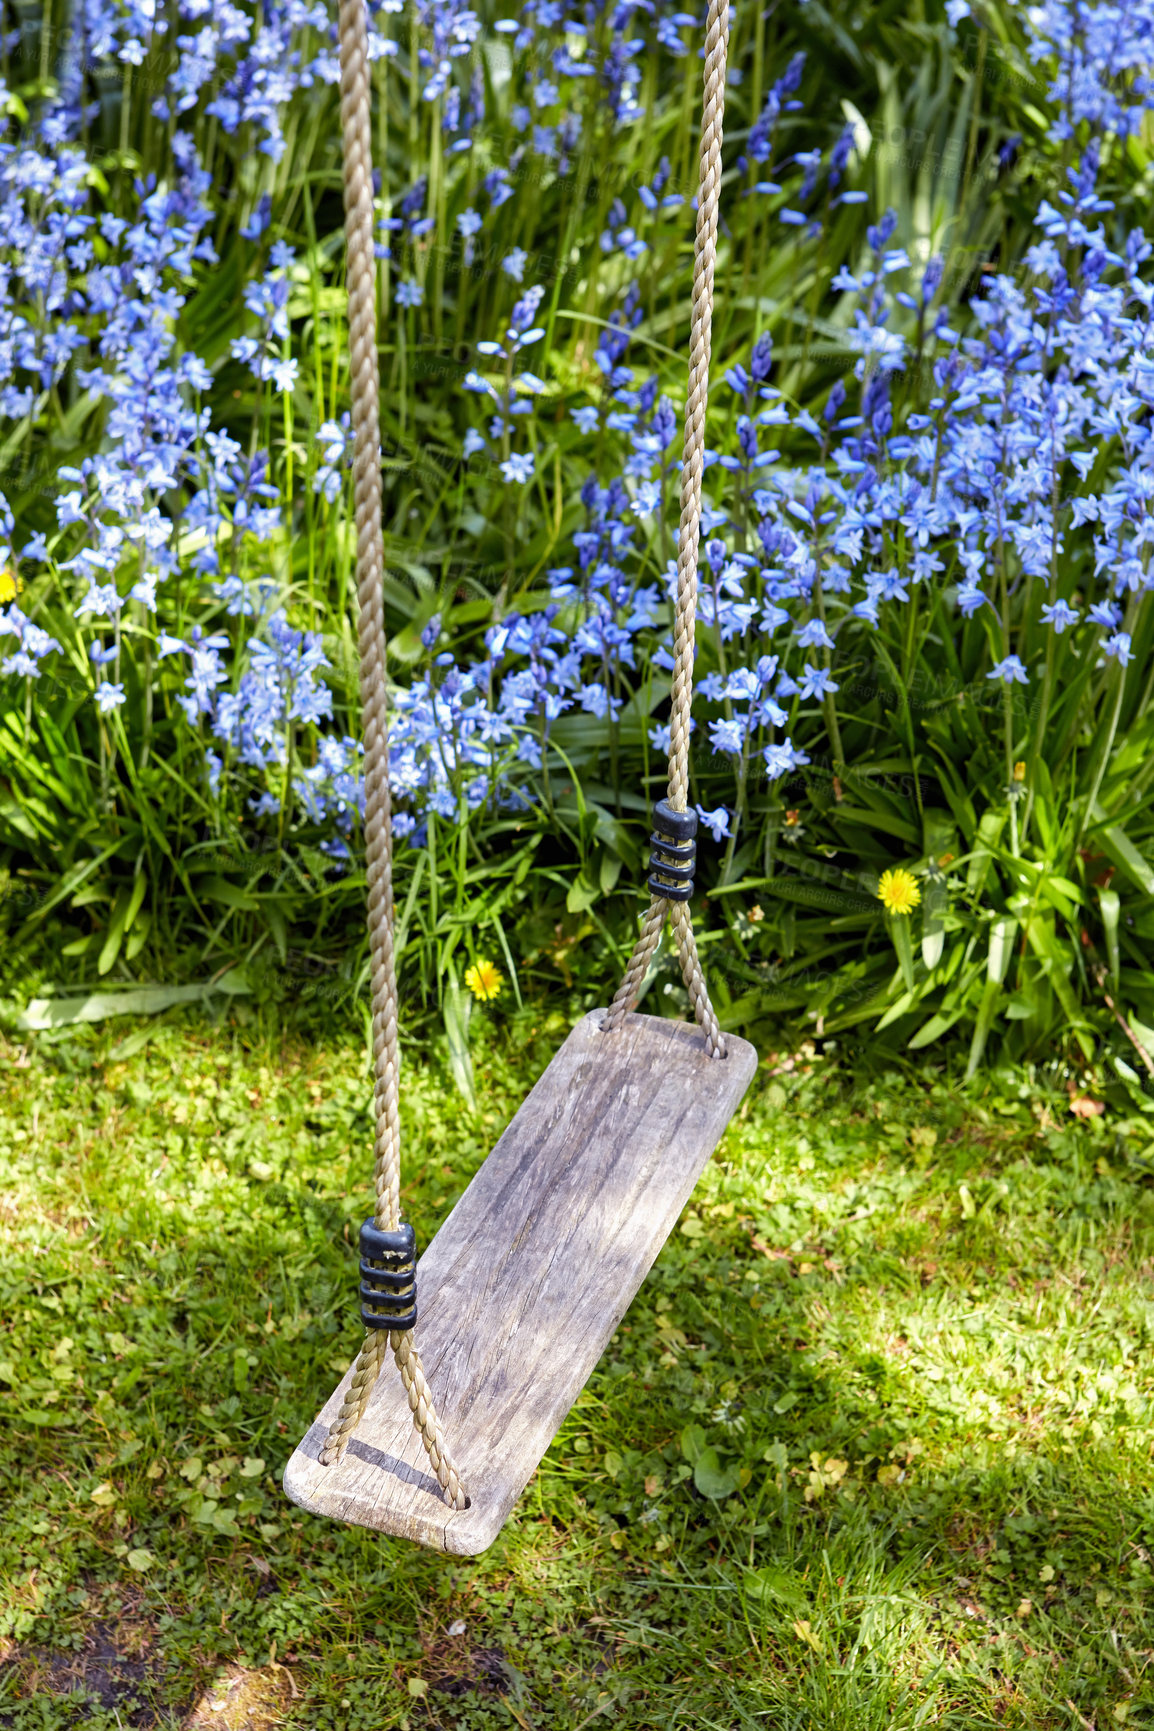 Buy stock photo Garden in blue - Bluebell - Scilla siberica, blue flowers in late spring